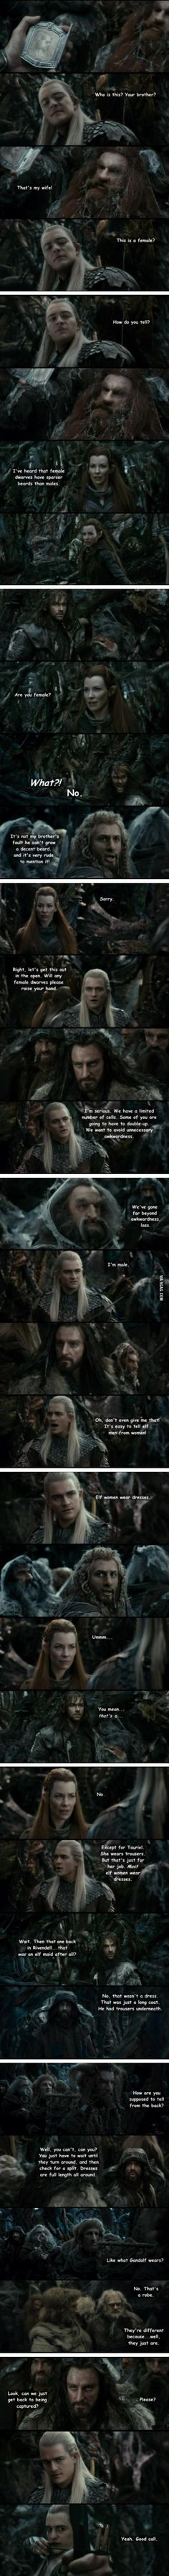 Elves and Dwarves. I almost wish this exchange were actually in the film.